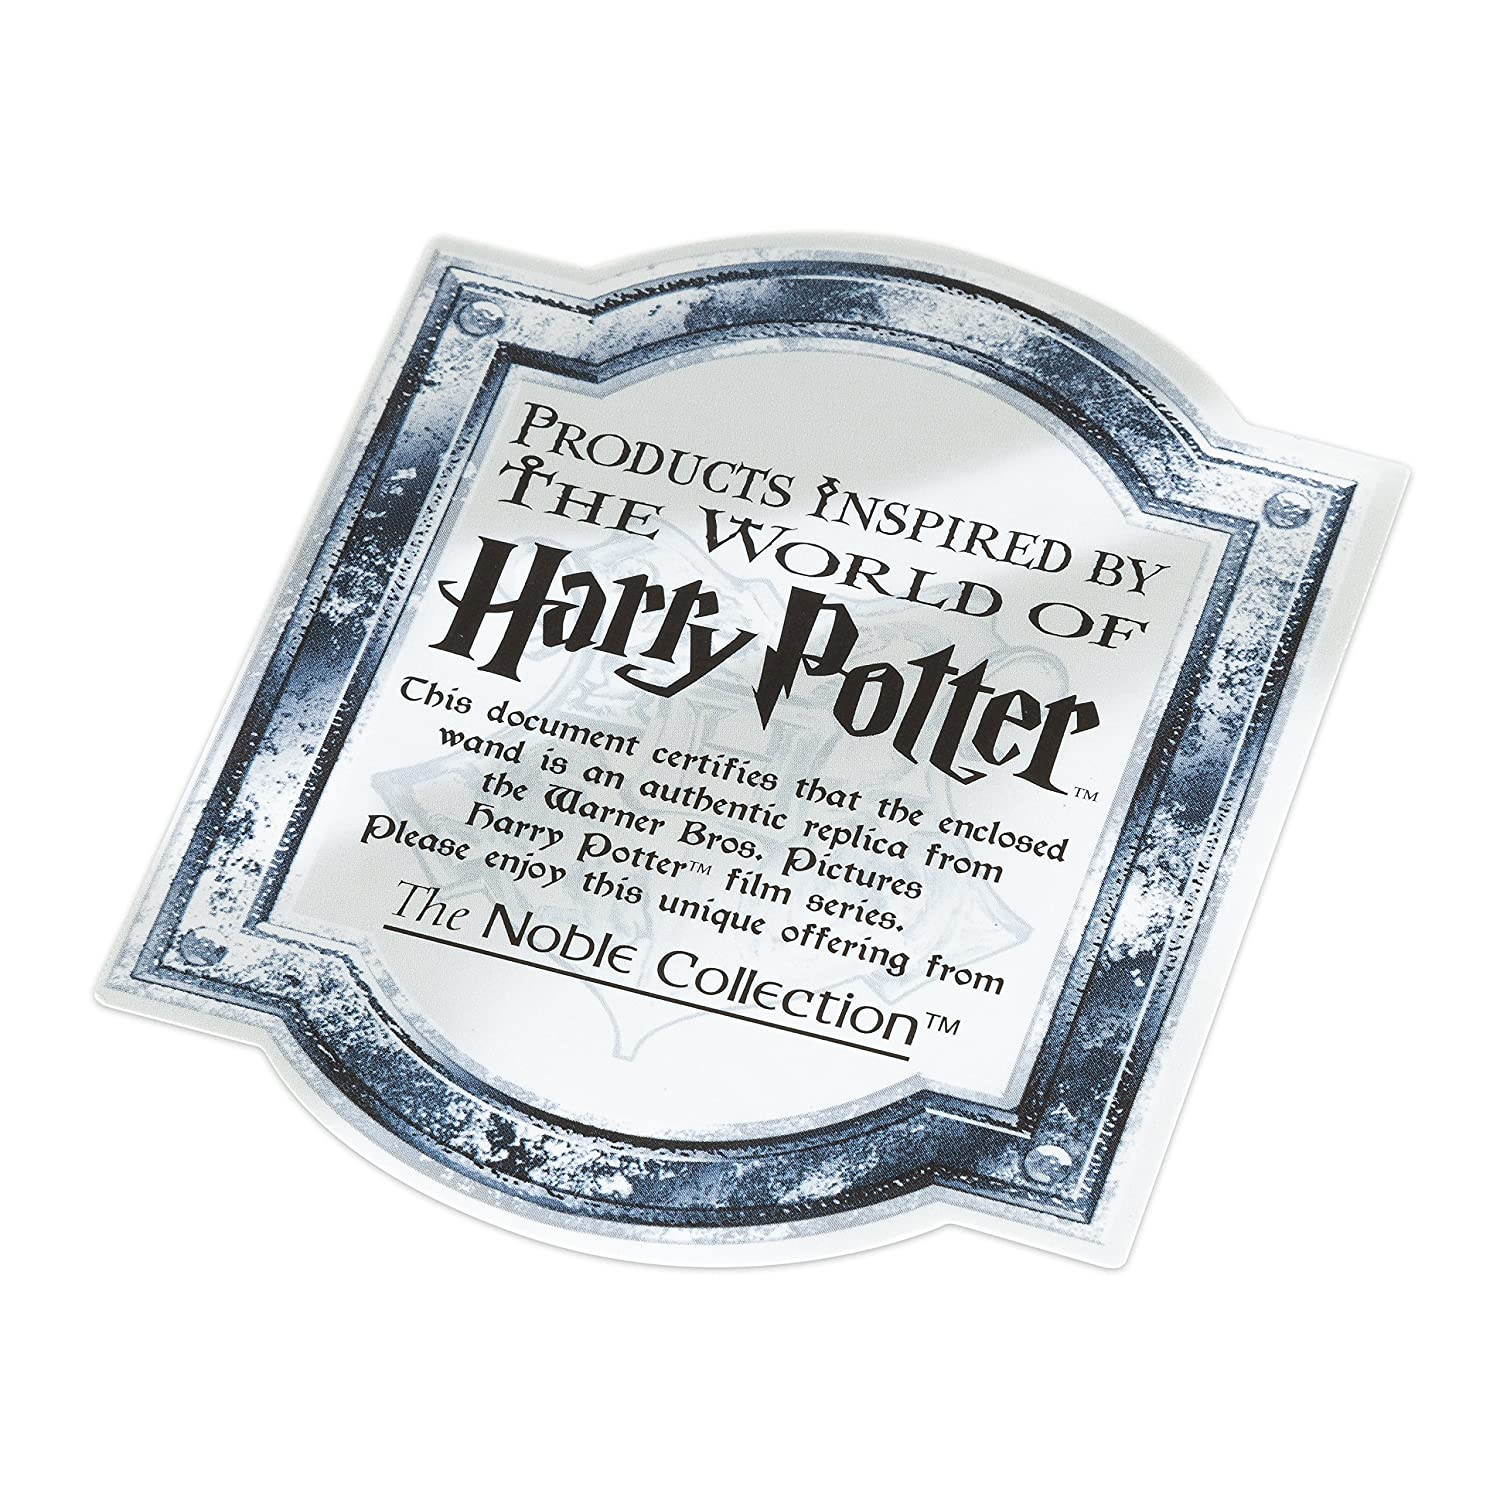 The Noble Collection Harry Potter Wand HPHRW B000795NTC